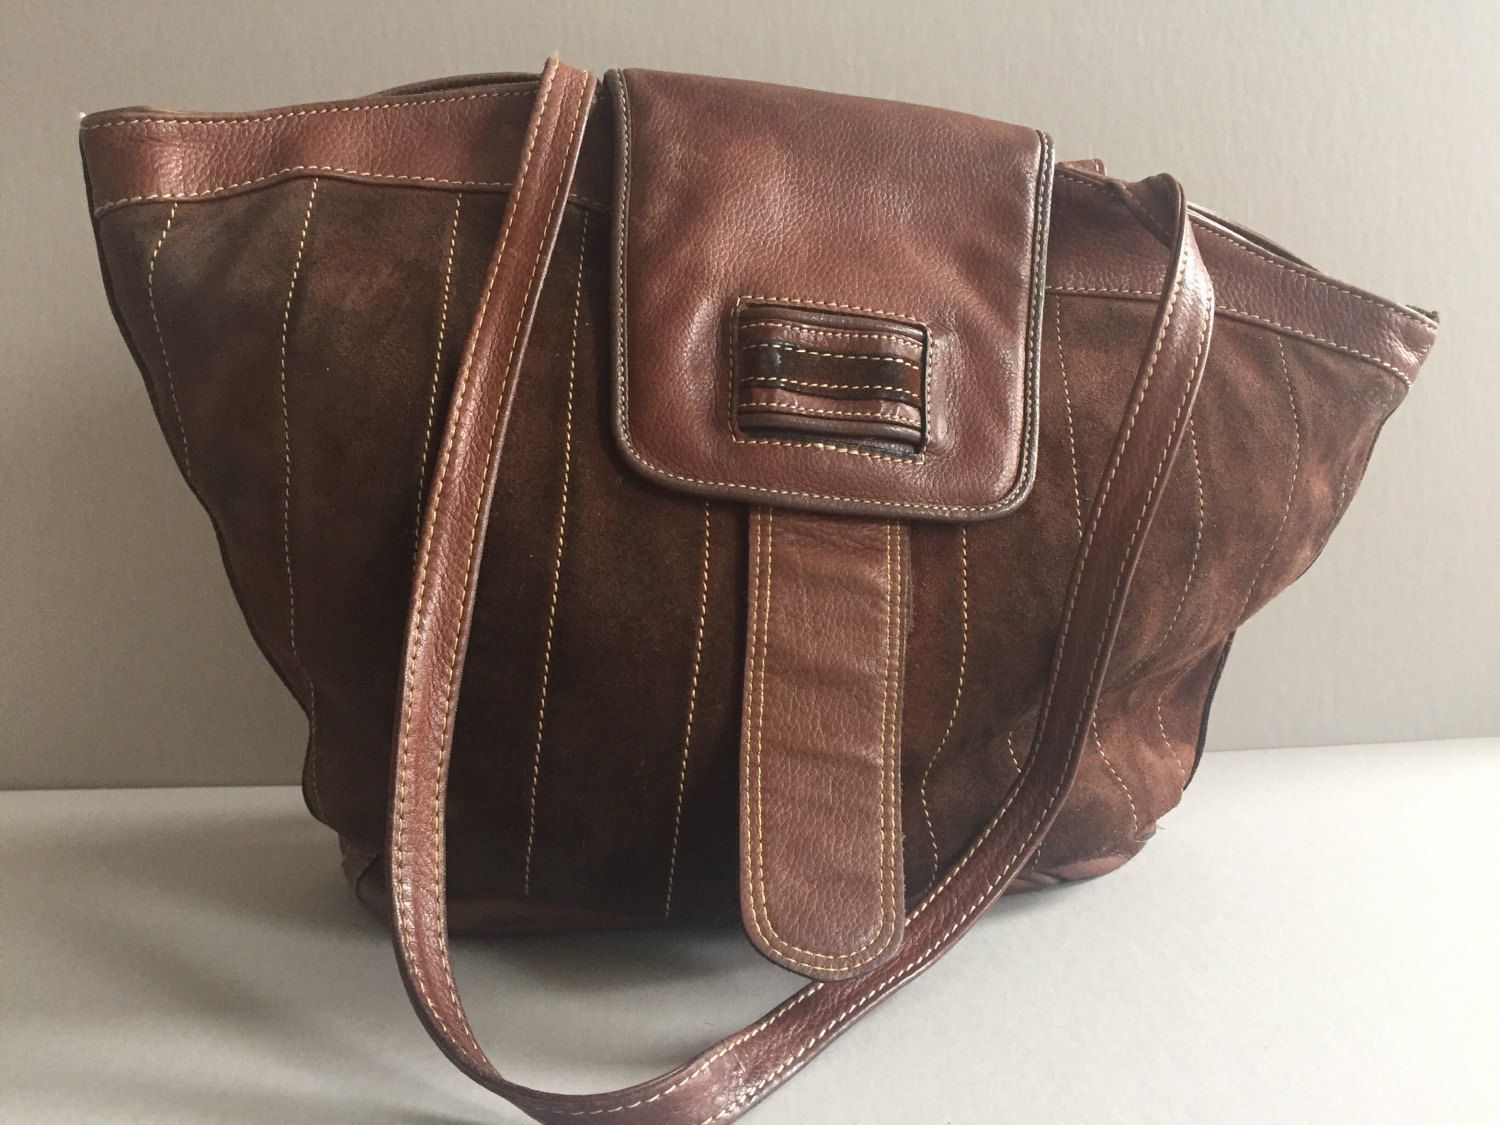 3bd22e1405 CHARLES KLEIN Suede Leather Handbag Chocolate Brown Made in Italy Vintage  Bag by BROCANTEBedStuy on Etsy